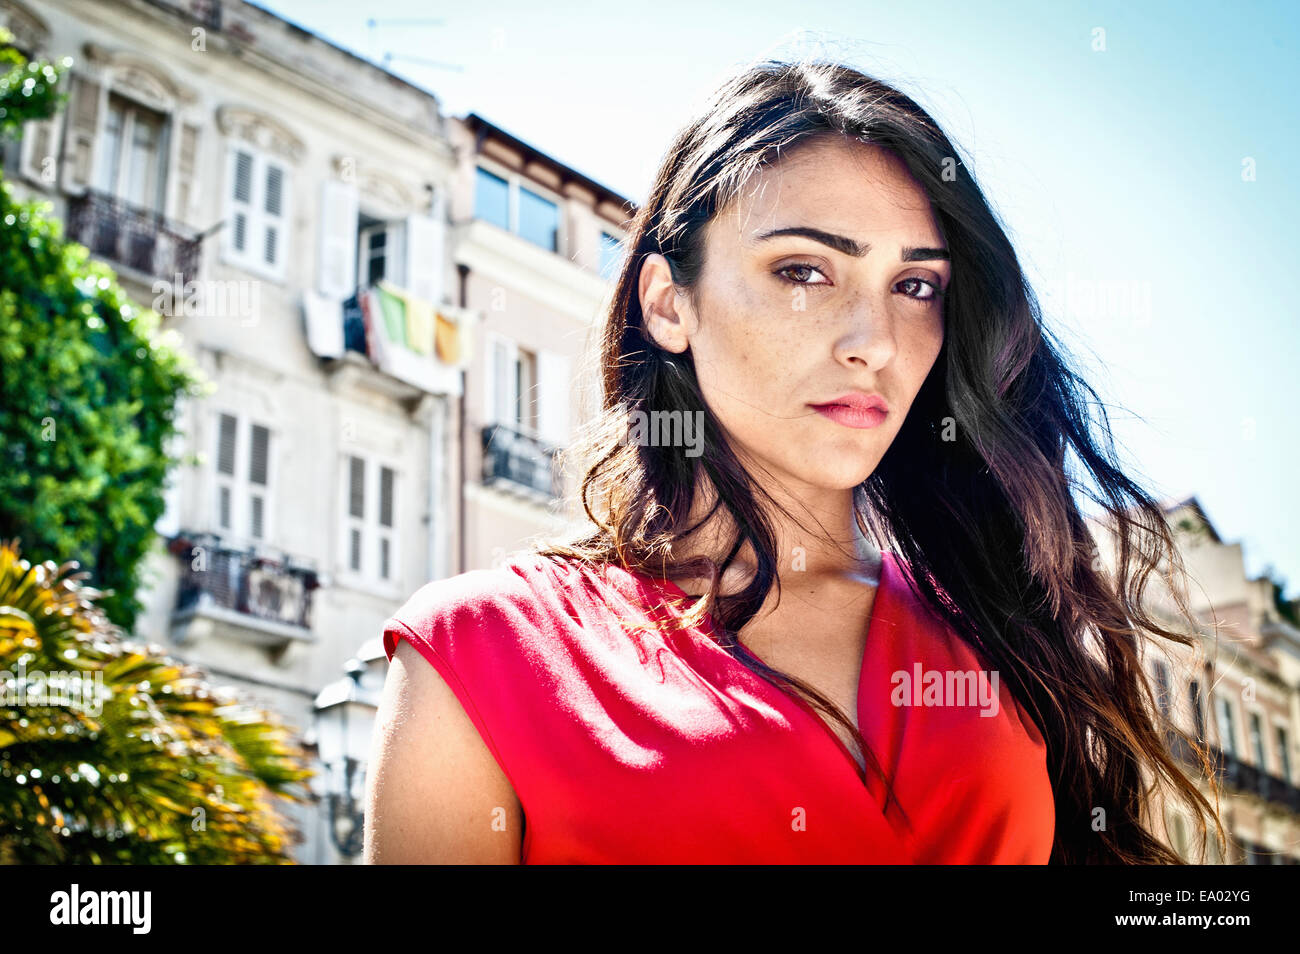 Portrait of sultry young woman on street, Cagliari, Sardinia, Italy - Stock Image